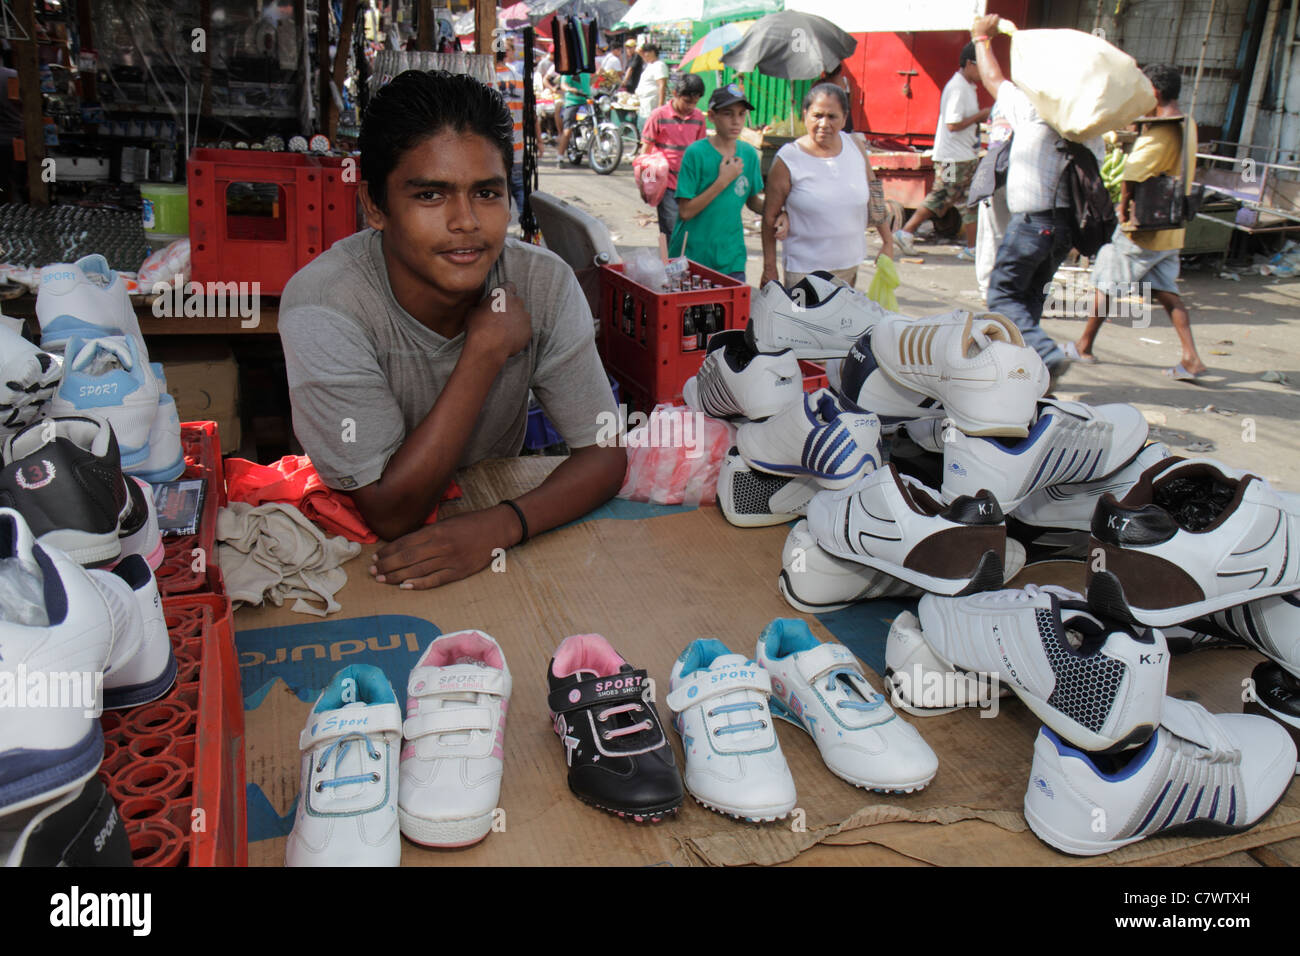 managua mercado oriental flea market marketplace managua mercado oriental flea market marketplace shopping shopper vendor stall hispanic boy teen job athletic